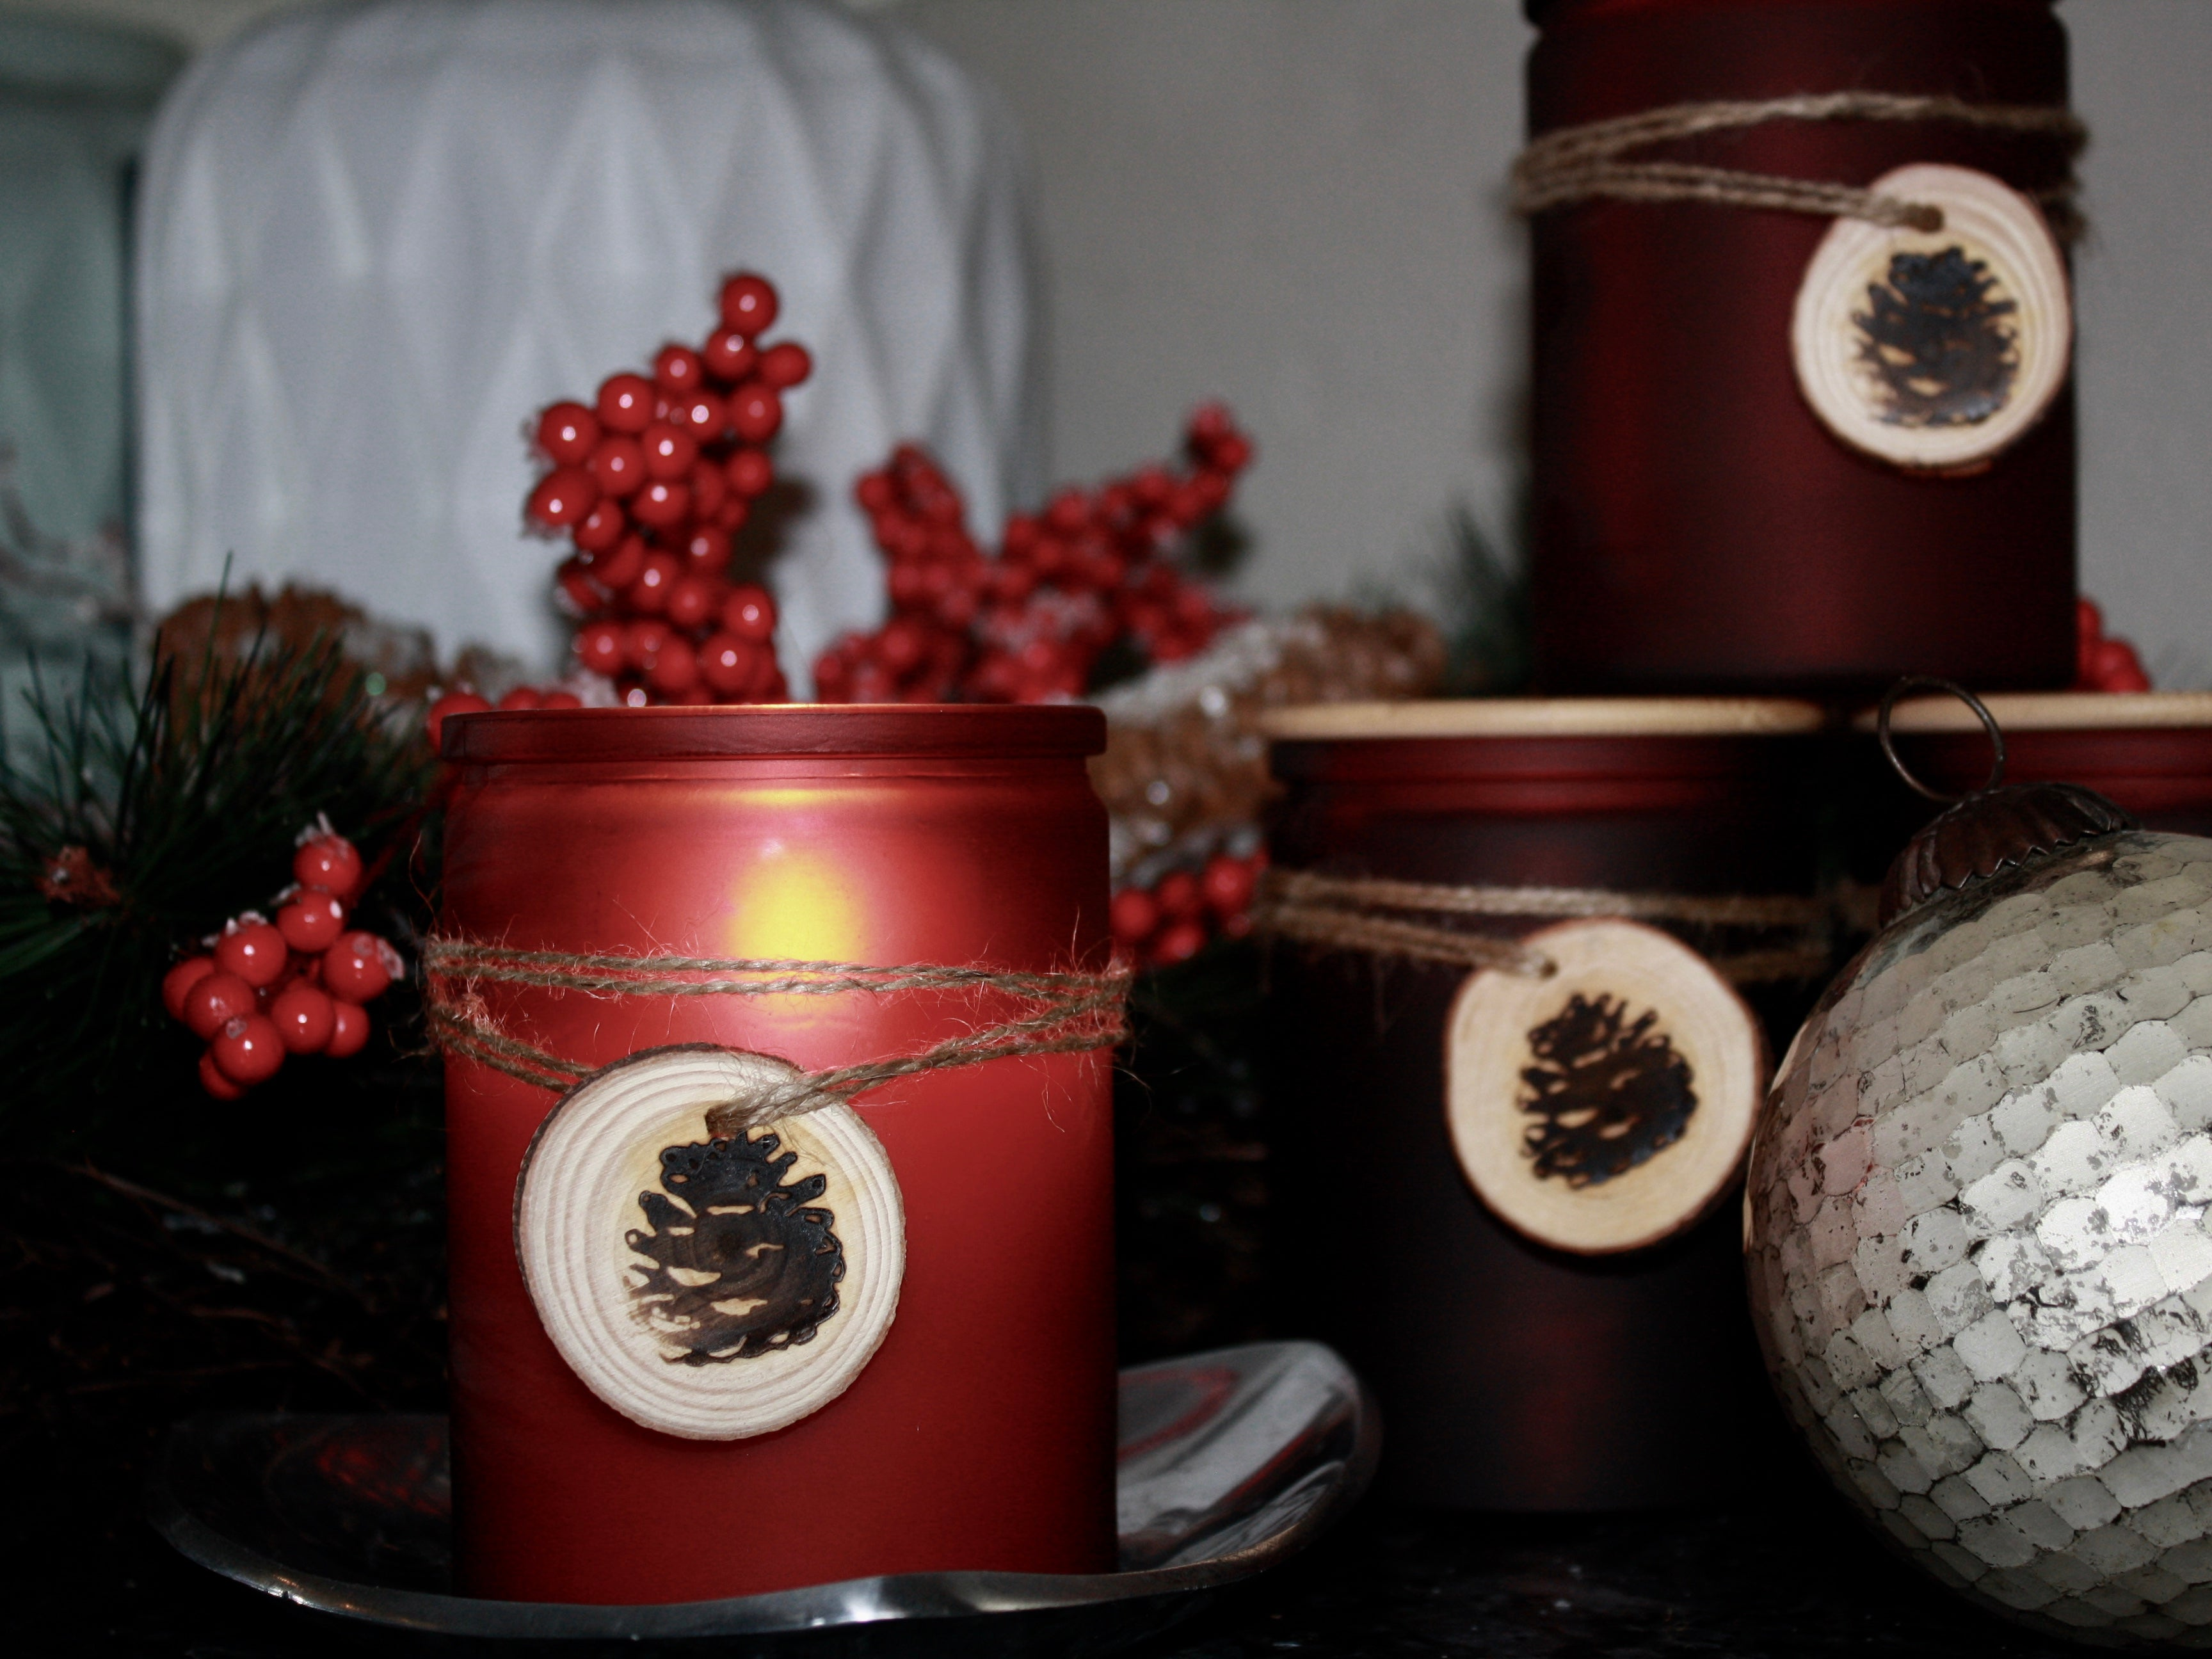 Festive Pomegranate - 12 oz. Custom Soy Blend Jar with Maple Wood Lid -  Available in Frosted Red